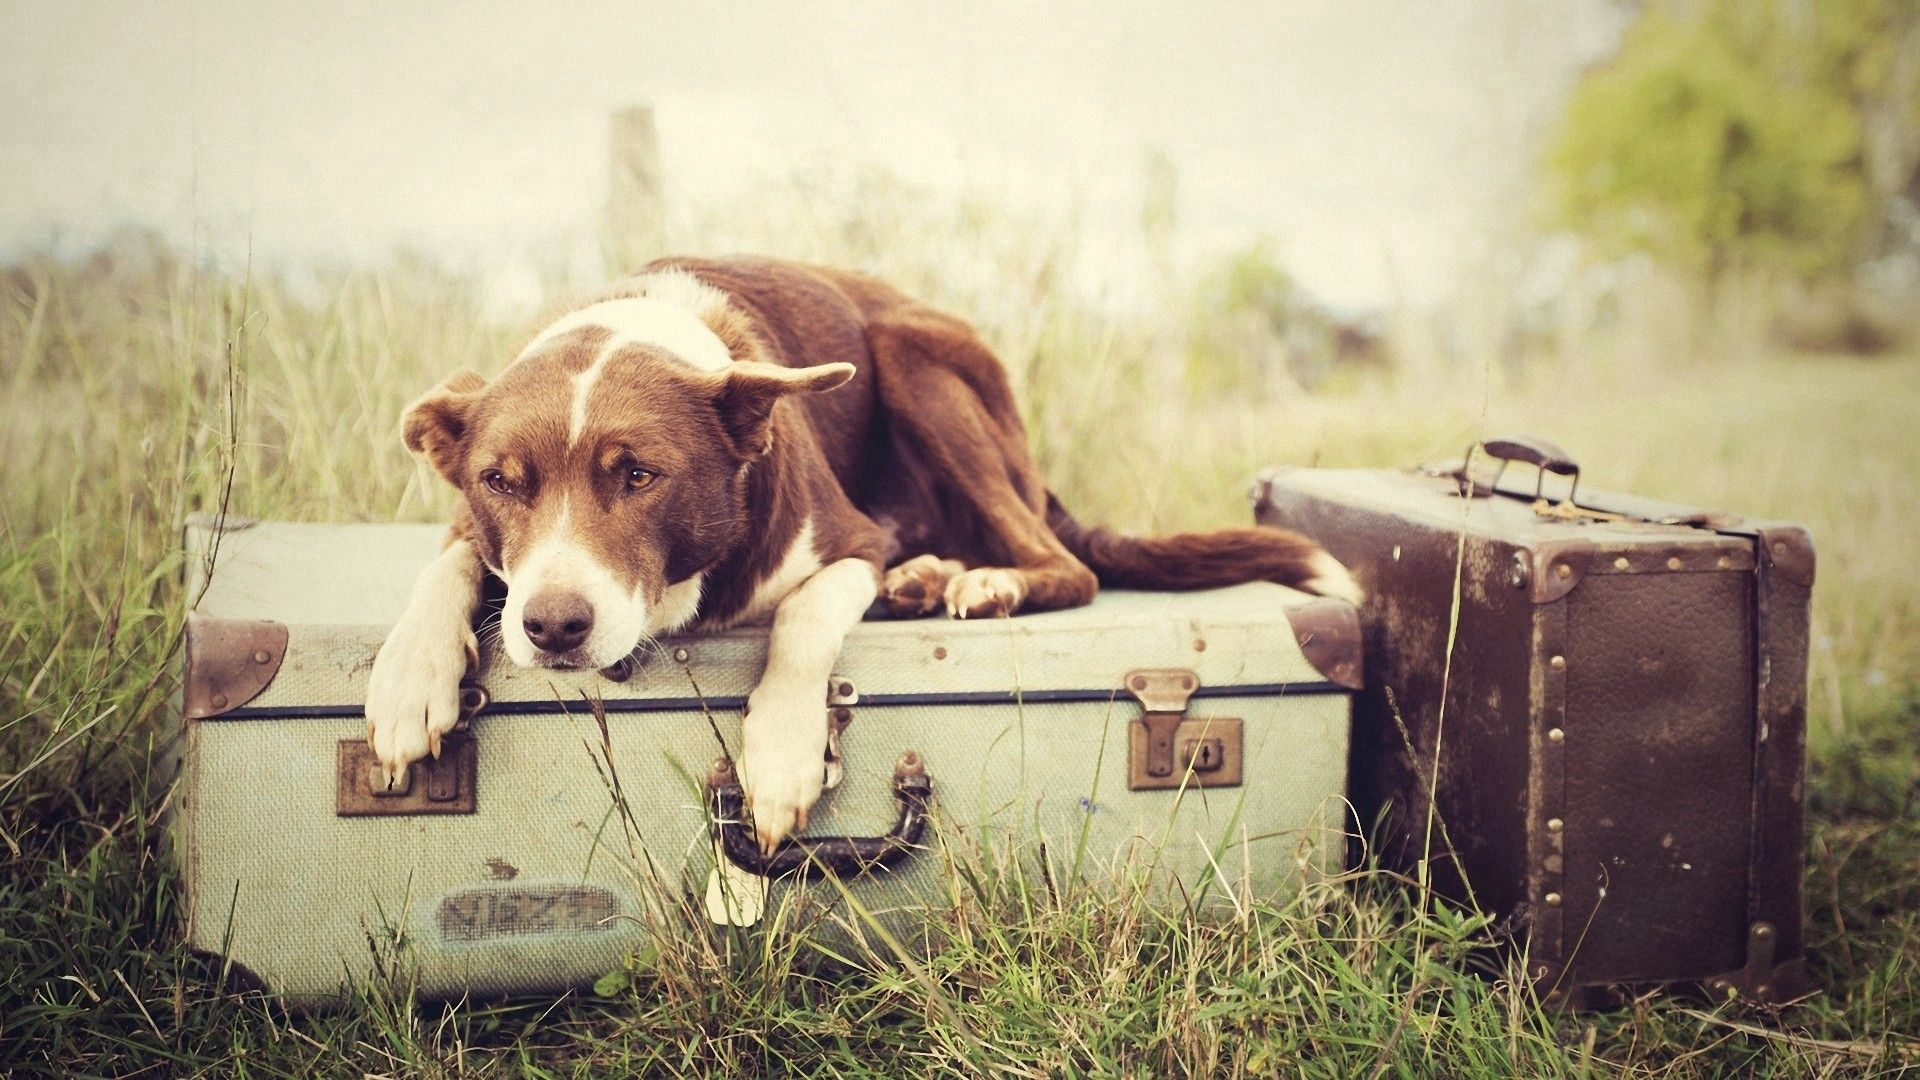 55629 download wallpaper Animals, Dog, Suitcases, To Lie Down, Lie, Expect screensavers and pictures for free